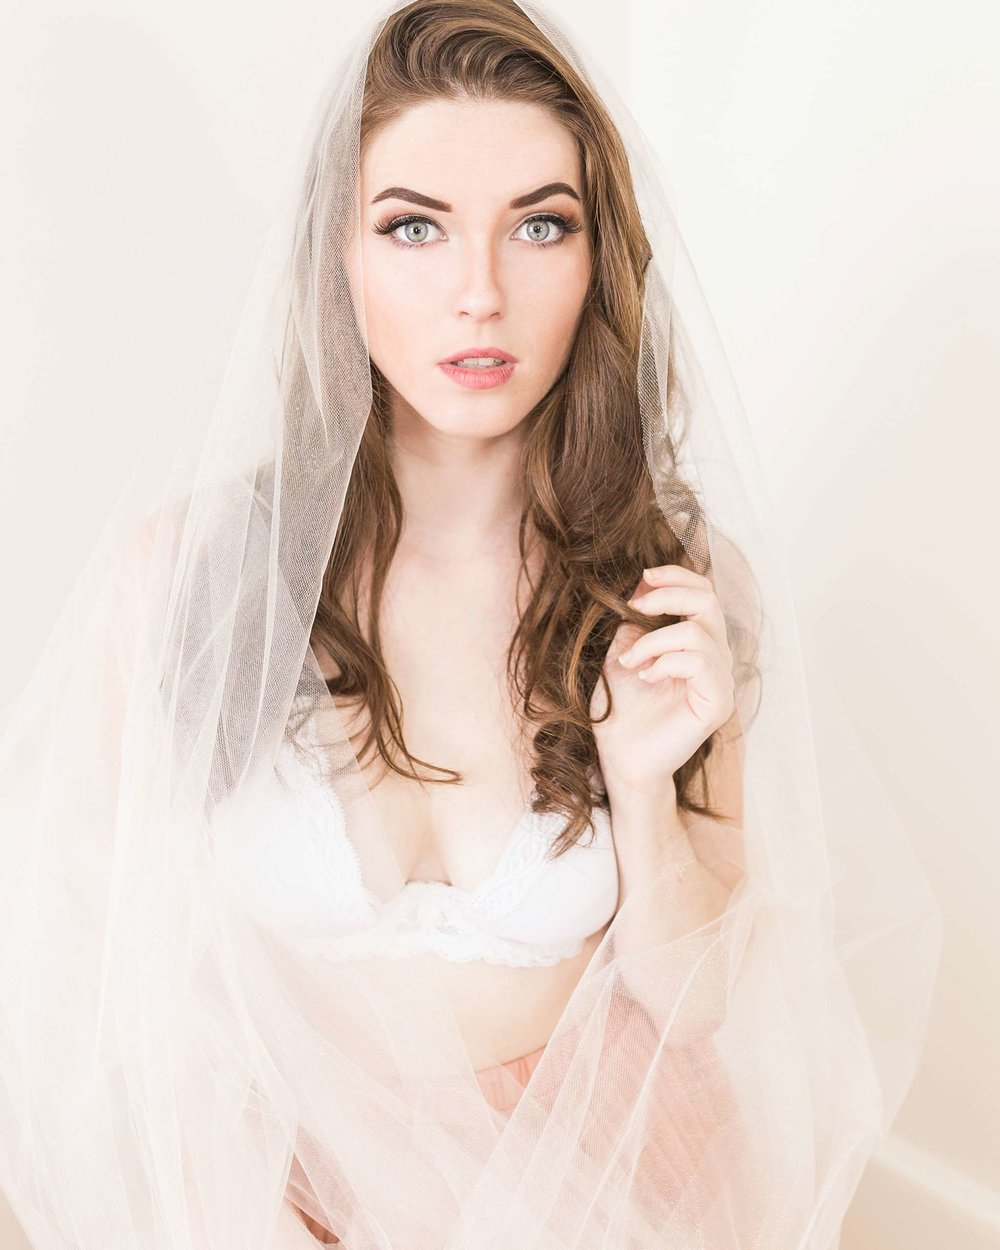 Contemporary boudoir, glamour, head shot photo shoot with an aspiring actress. Ashley looked stunning in a DIY Frida Kahlo inspired head piece, tulle skirt, gold sequin dress and white sheet.